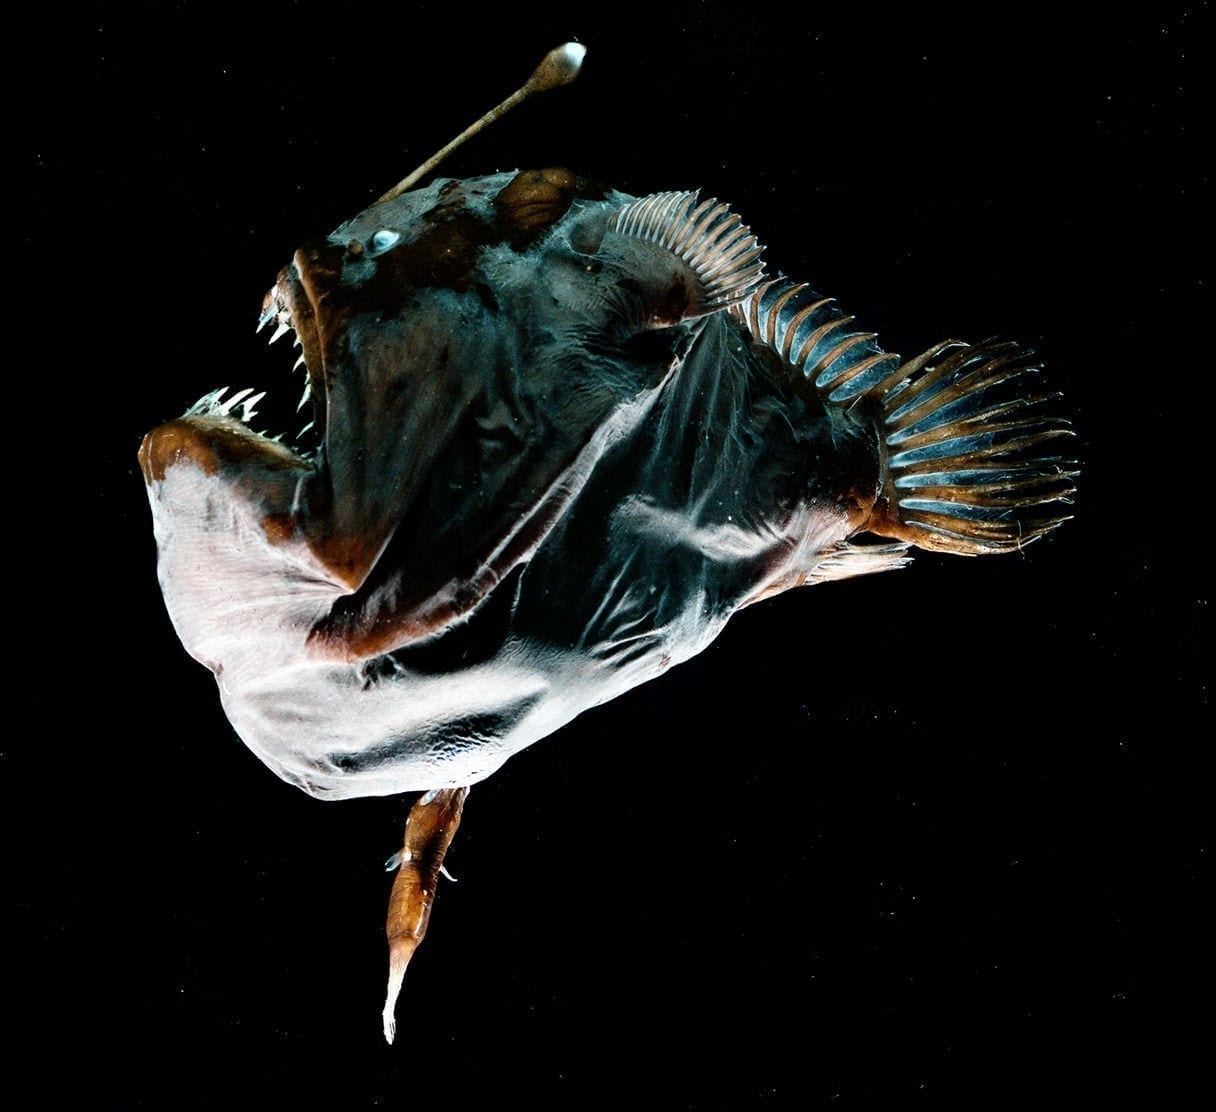 Angler Fish Interesting Mating Facts - Interesting Facts for Male Angler Fish Vs Female Angler Fish  186ref